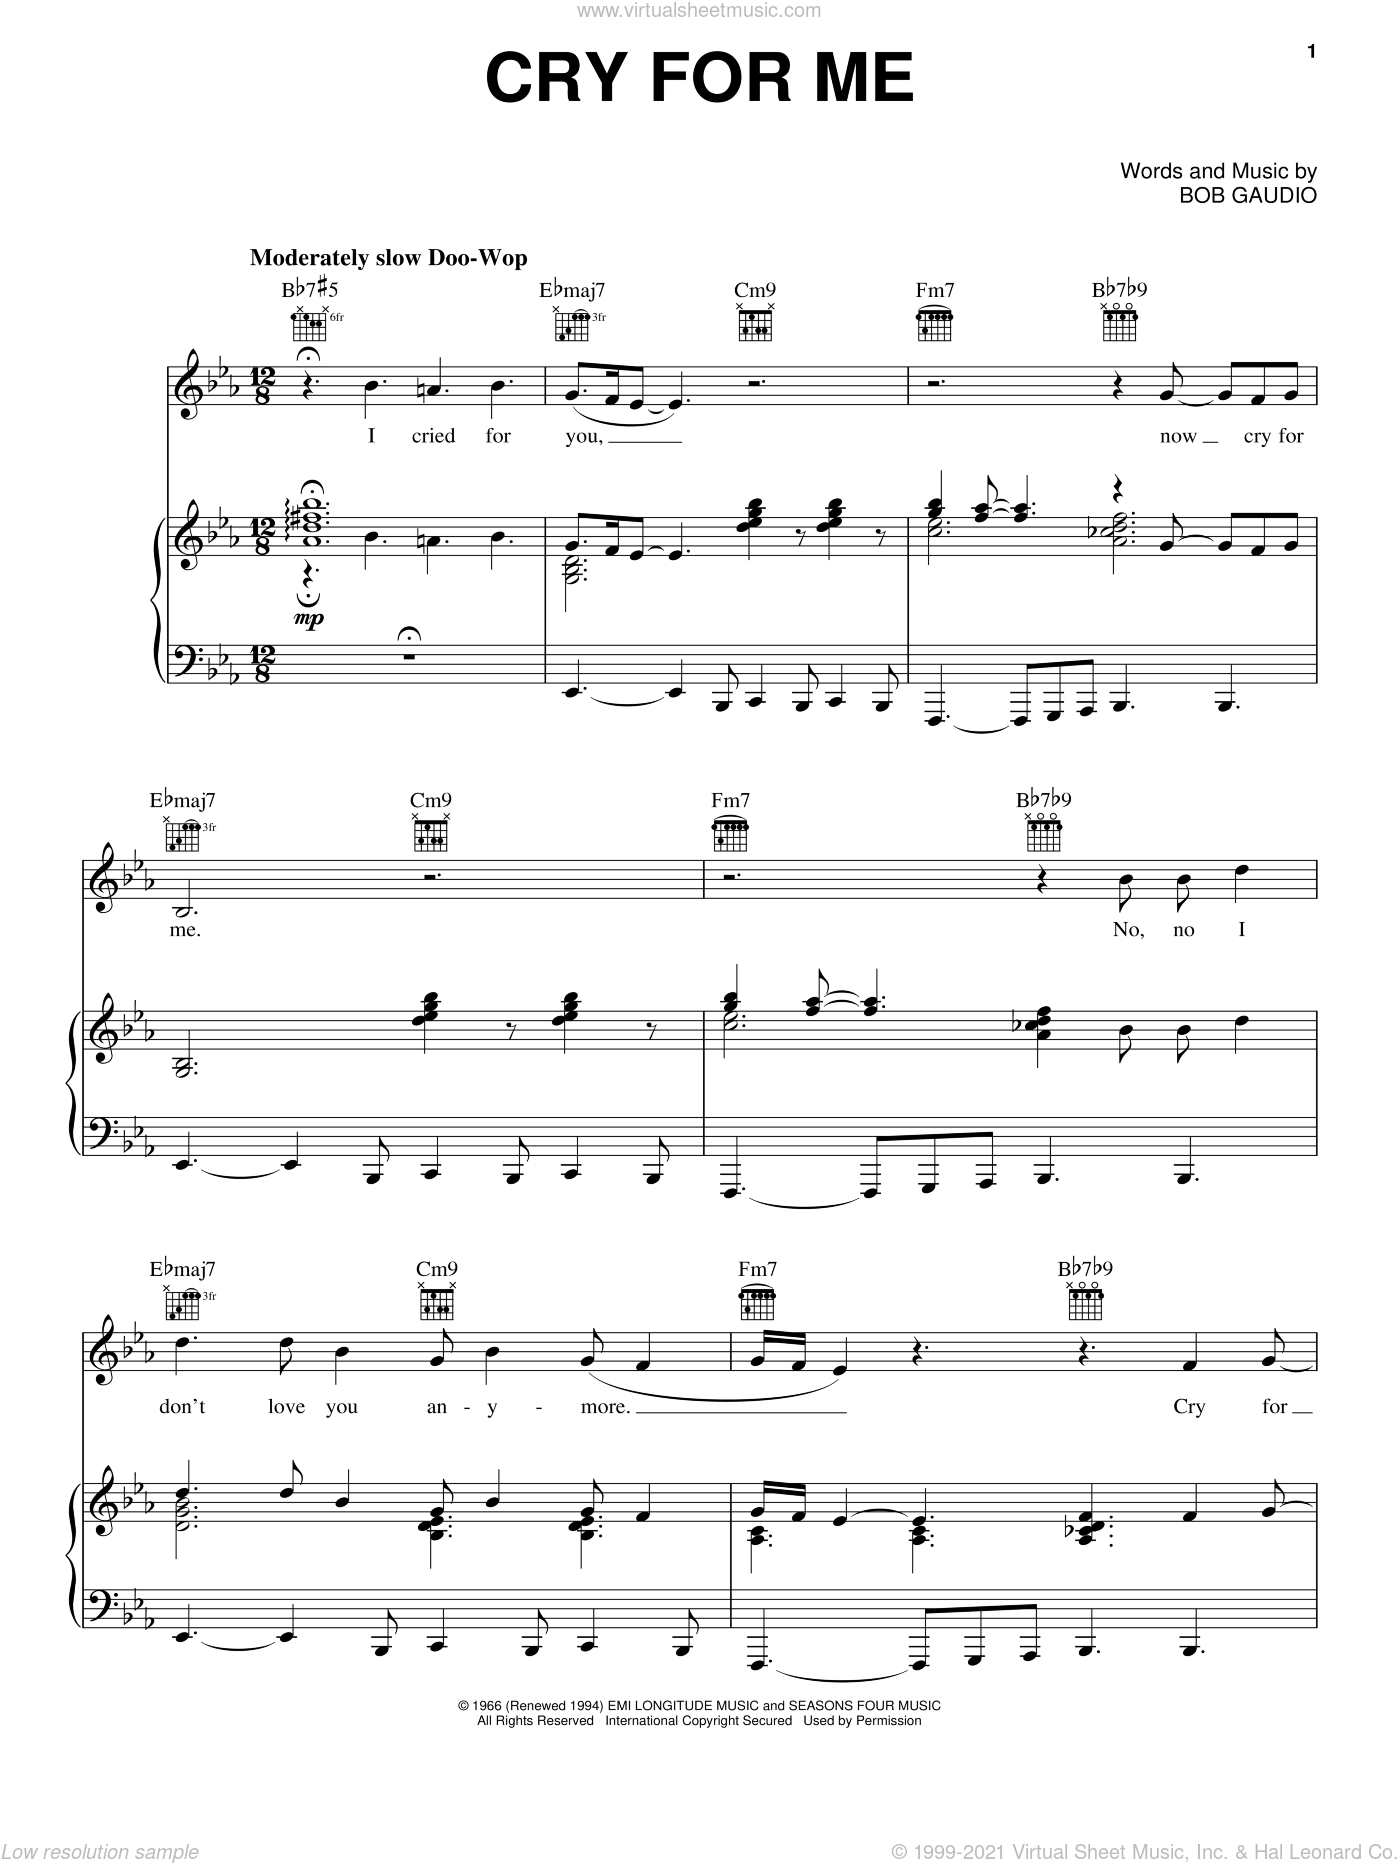 Cry For Me sheet music for voice, piano or guitar by Bob Gaudio